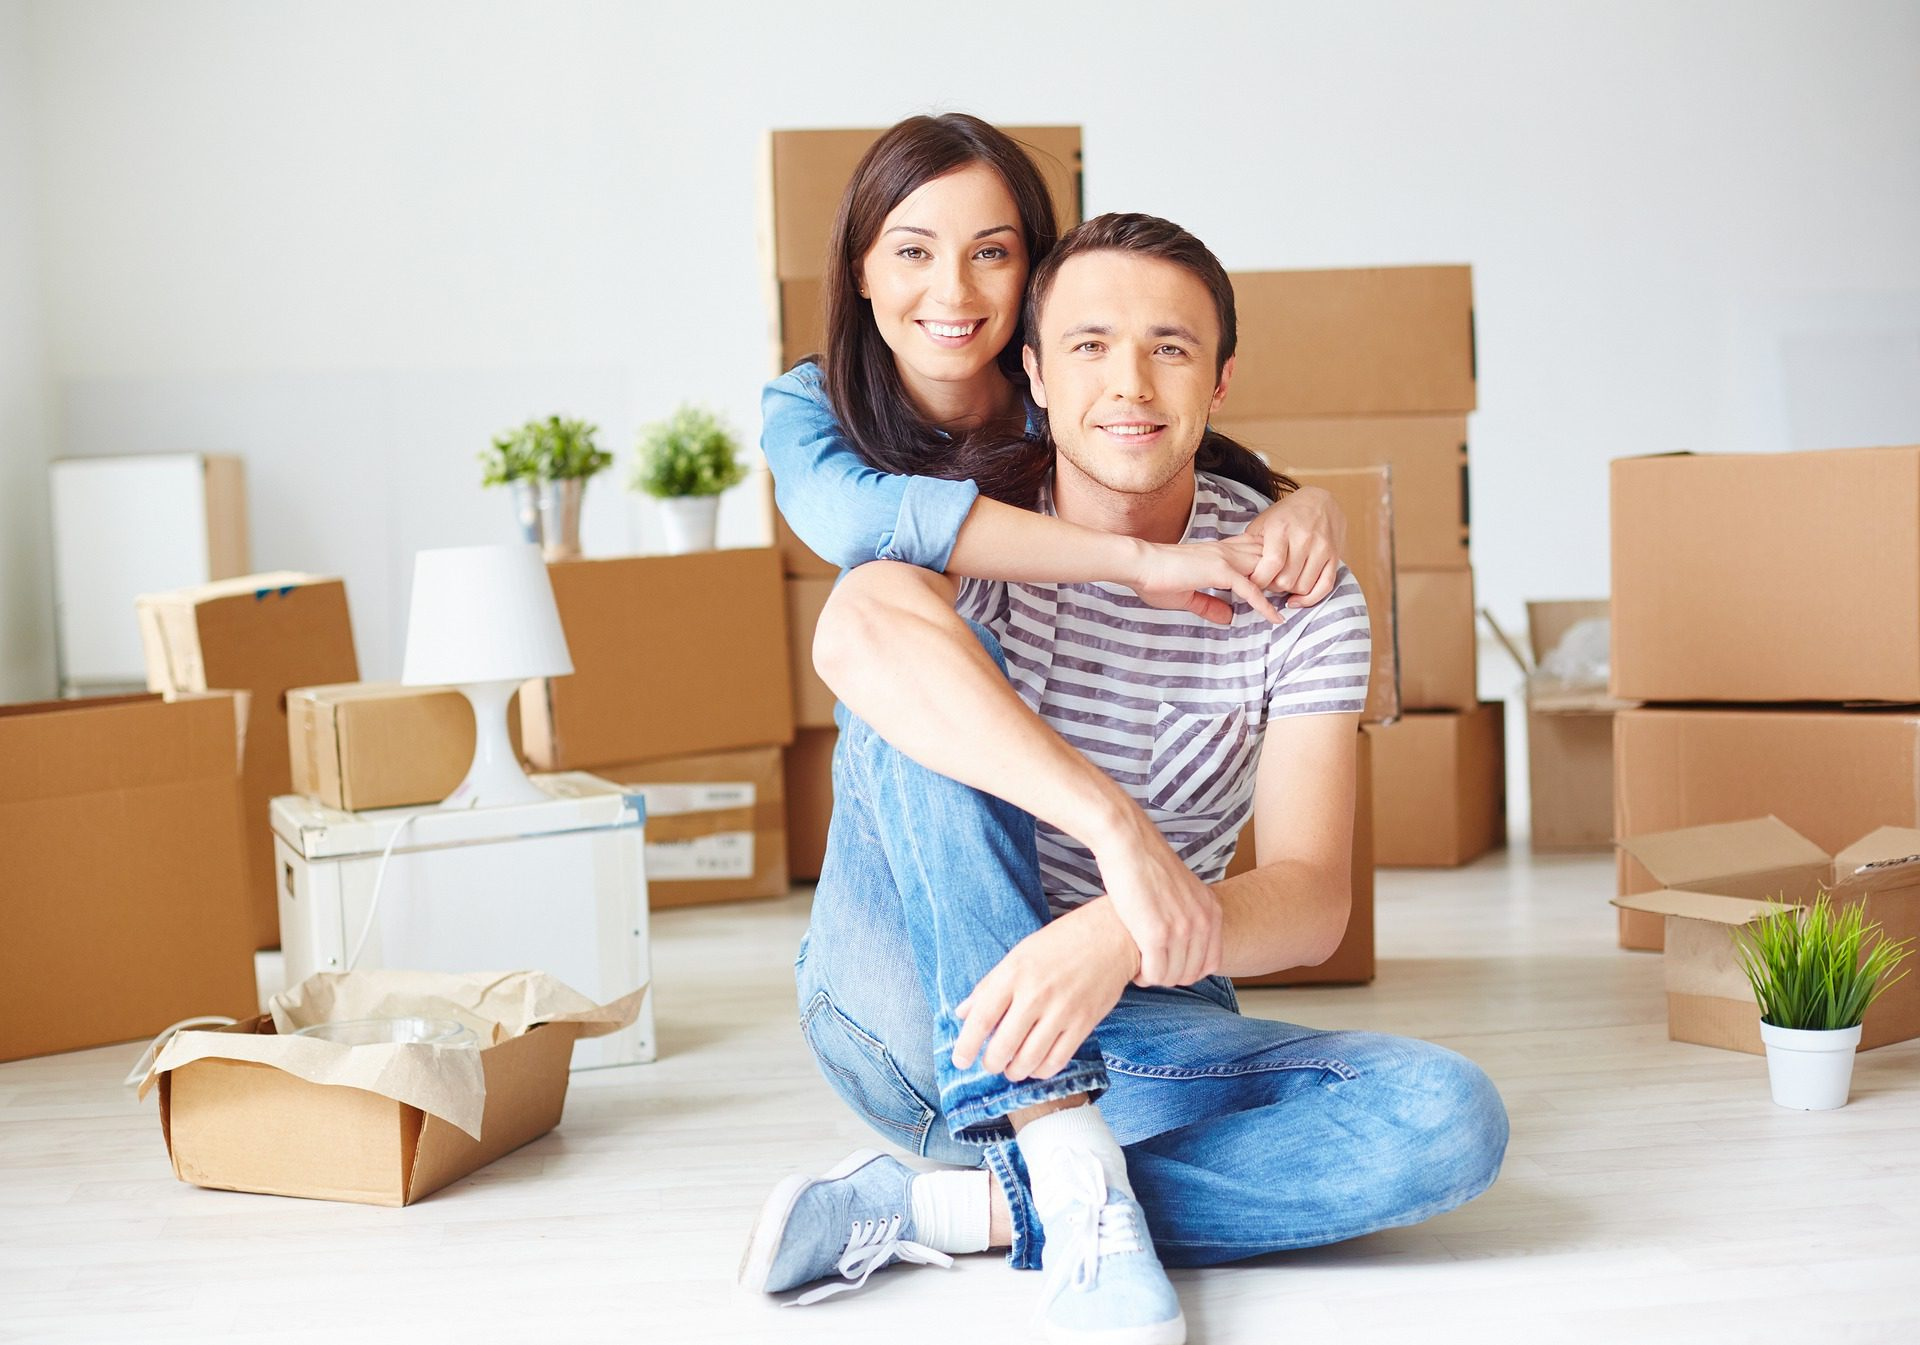 Things to Do After Moving to A New Home